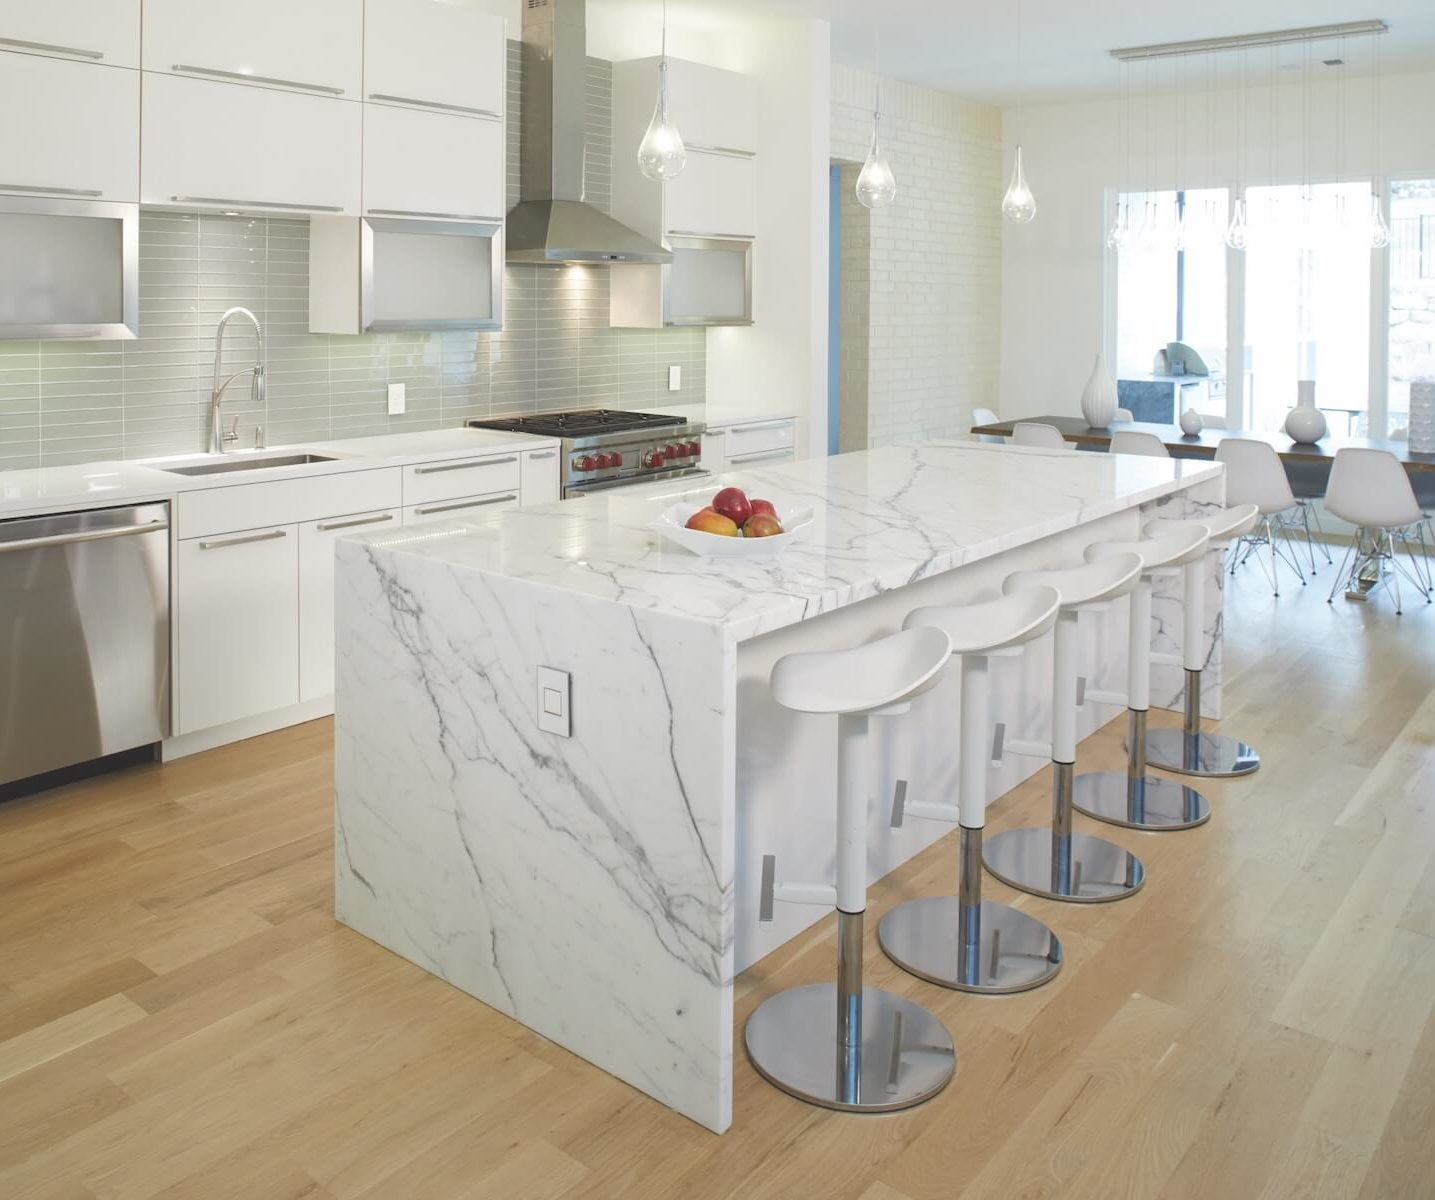 Calacatta Gold kitchen countertops